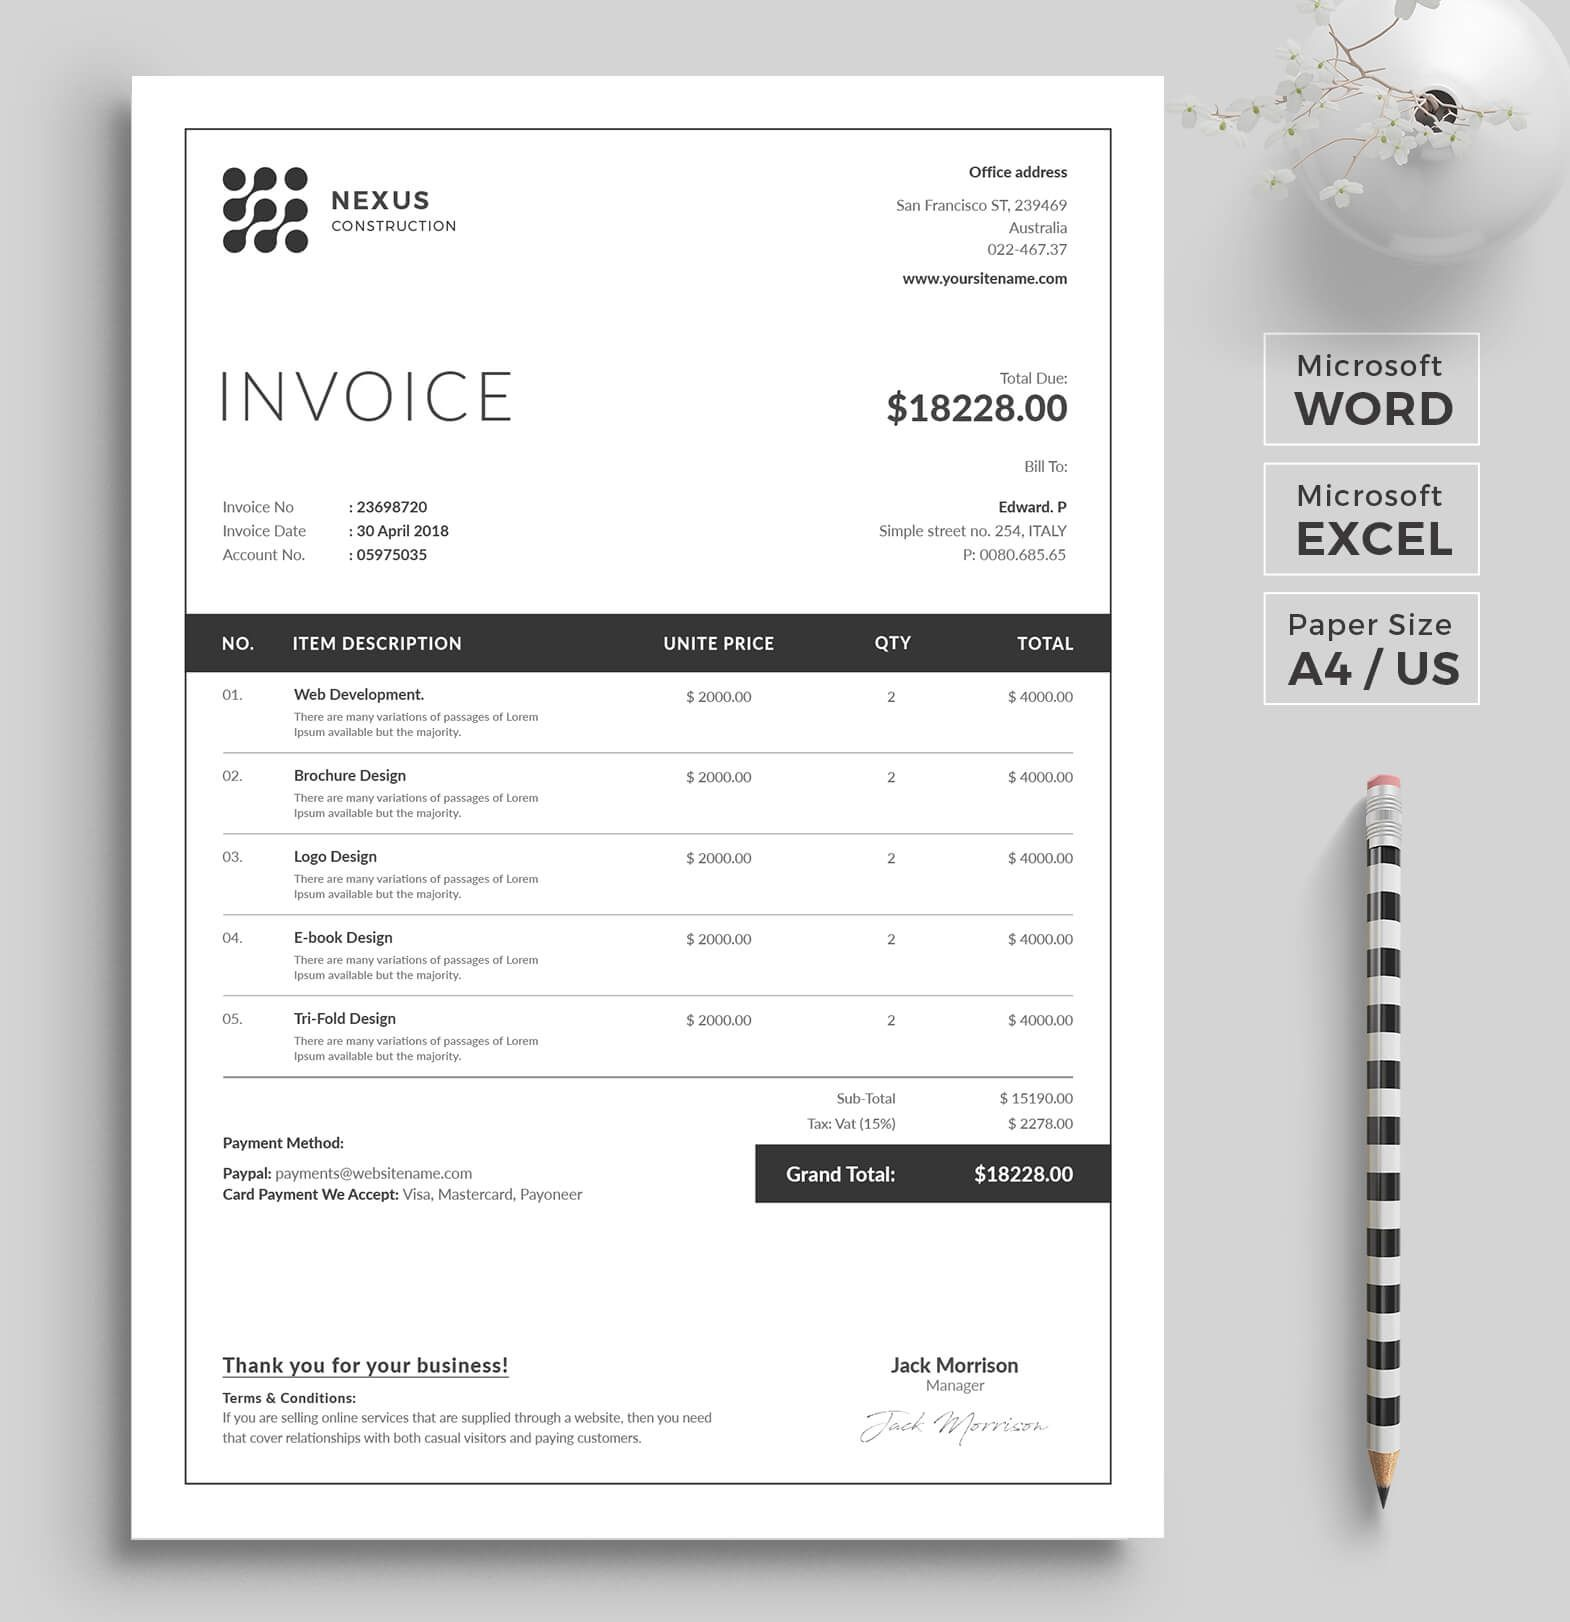 Invoice Template Invoice Design Ms Excel Auto Calculation Features Receipt Word Invoice Photography Invoice Business Invoice Invoice Design Invoice Design Template Photography Invoice